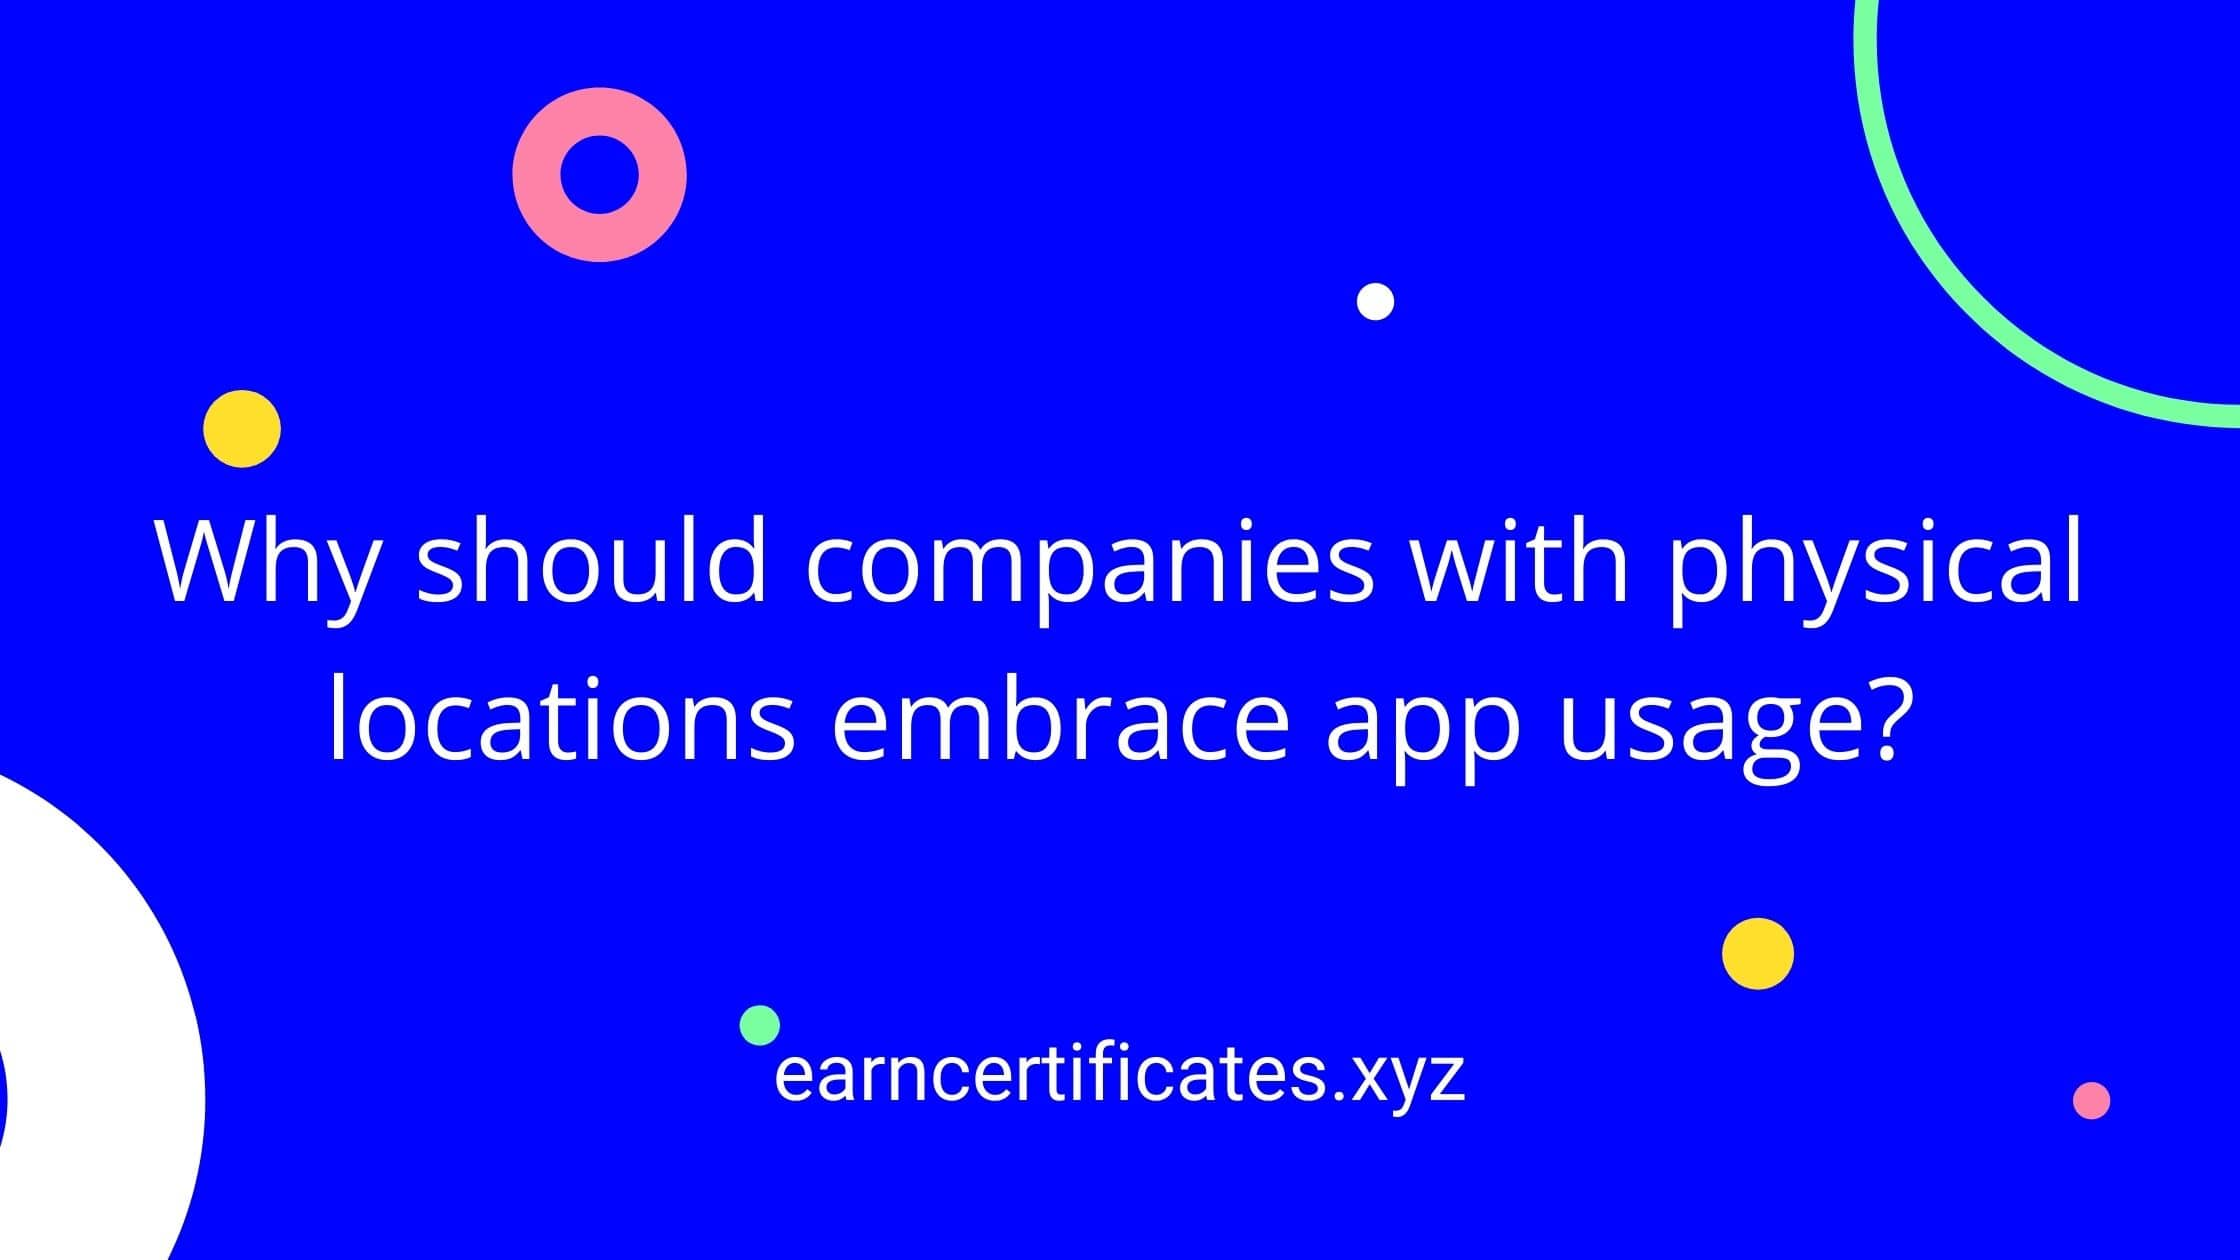 Why should companies with physical locations embrace app usage?